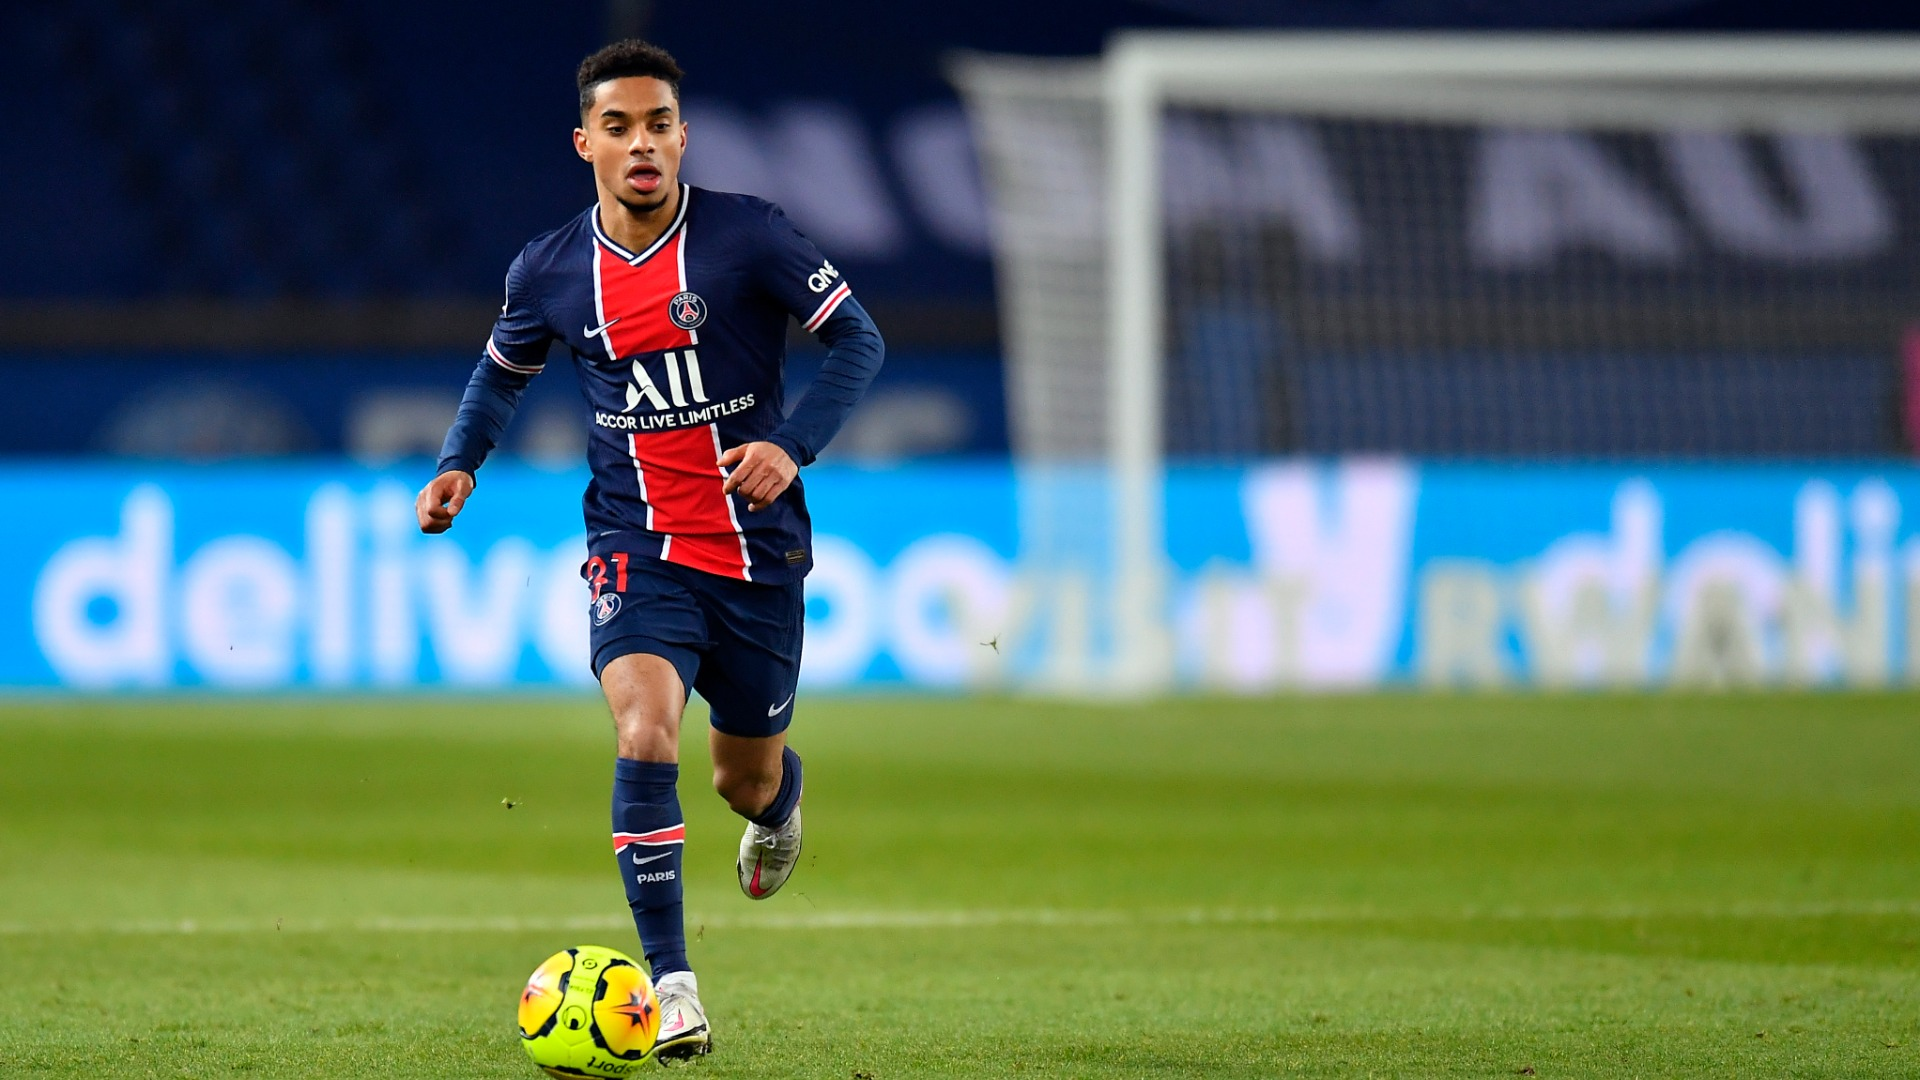 PSG defender Dagba tests positive for COVID-19